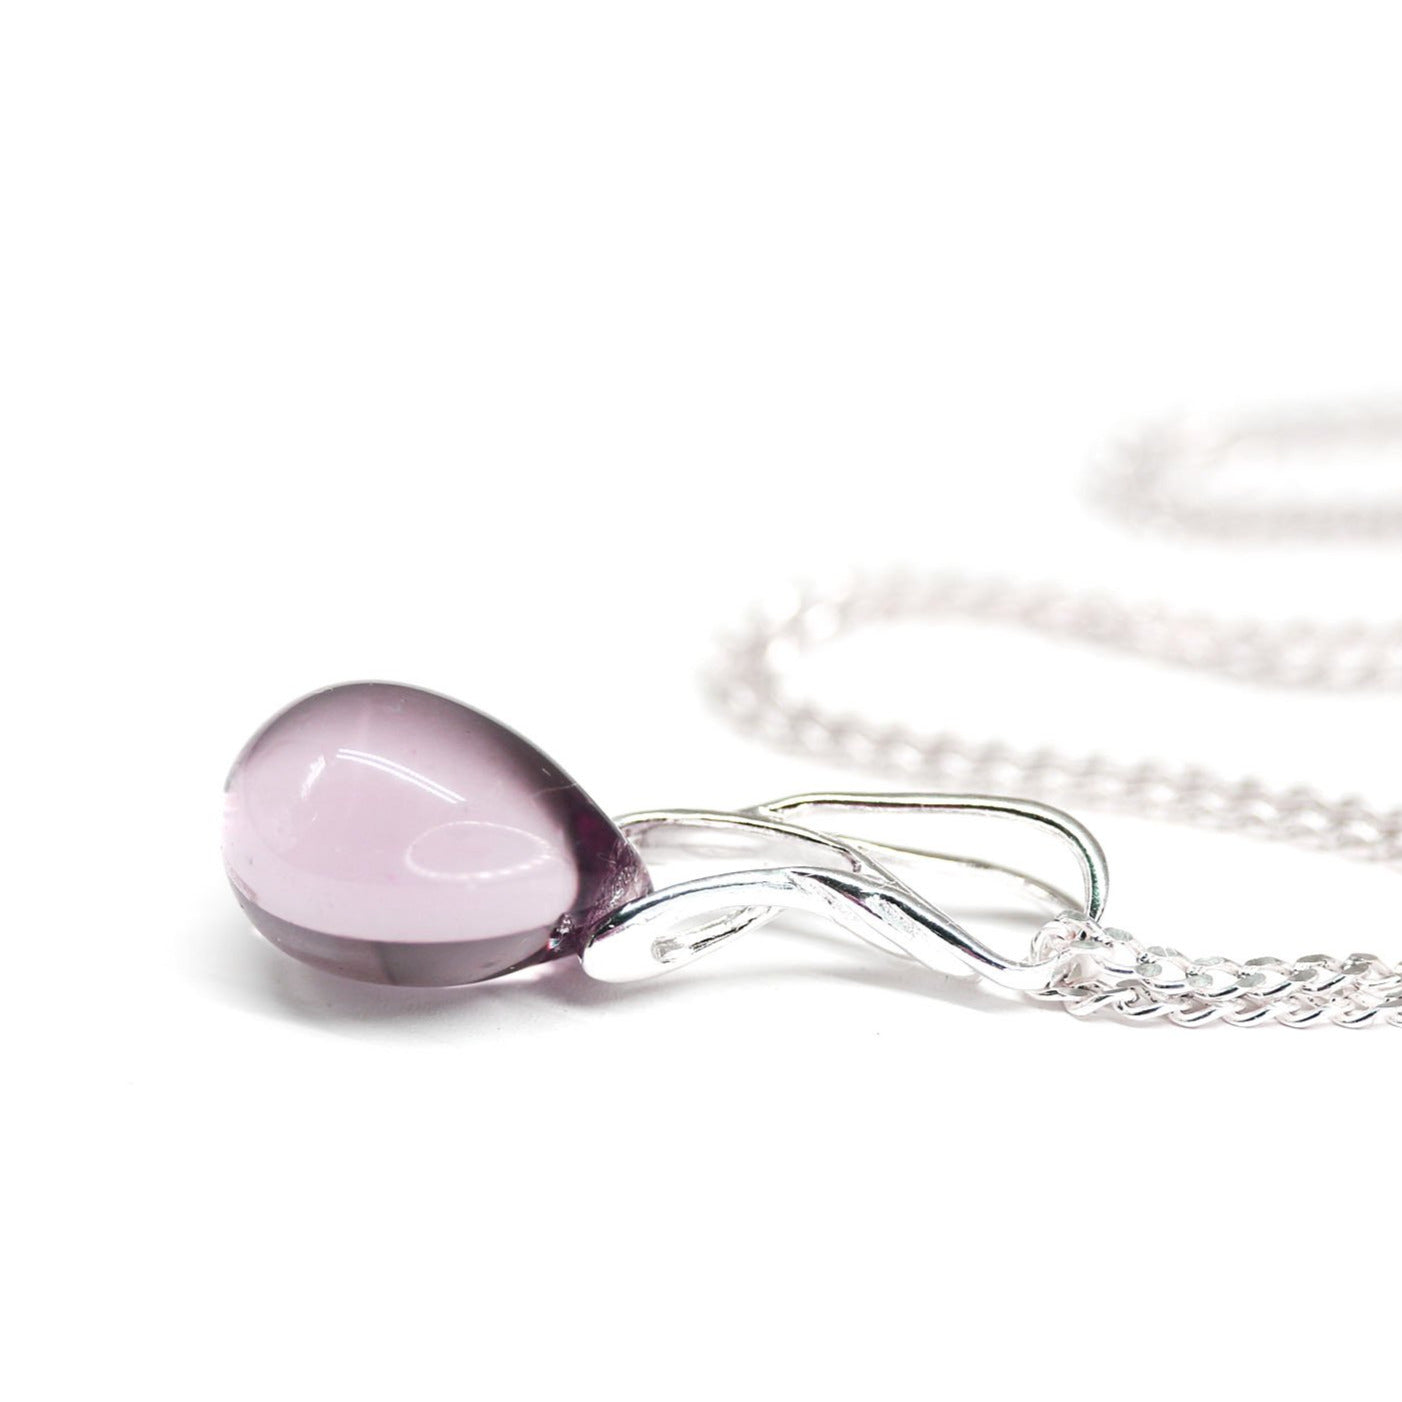 Light purple drop glass pendant on sterling silver chain women jewelry